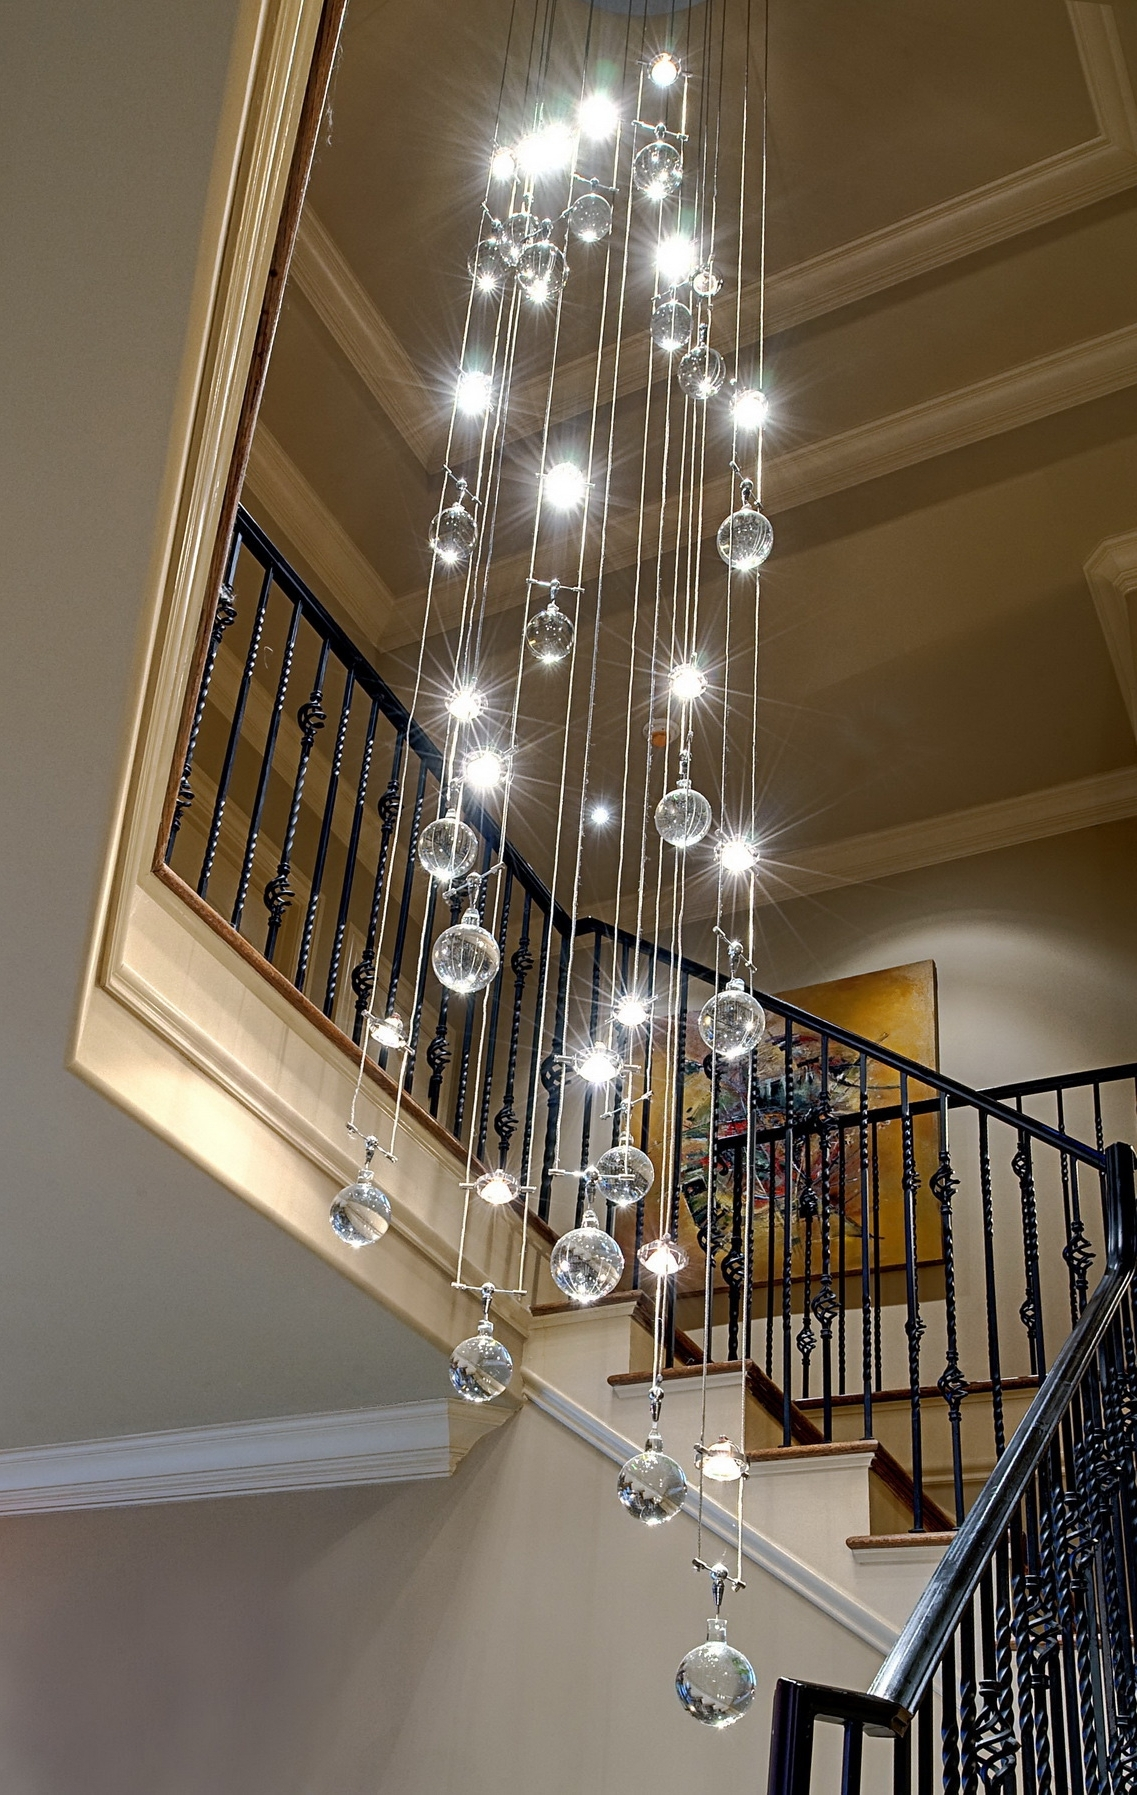 Interior: Modern Chandeliers For High Ceiling With Sparkly Crystals In Most Recent Modern Chandelier (Gallery 13 of 15)